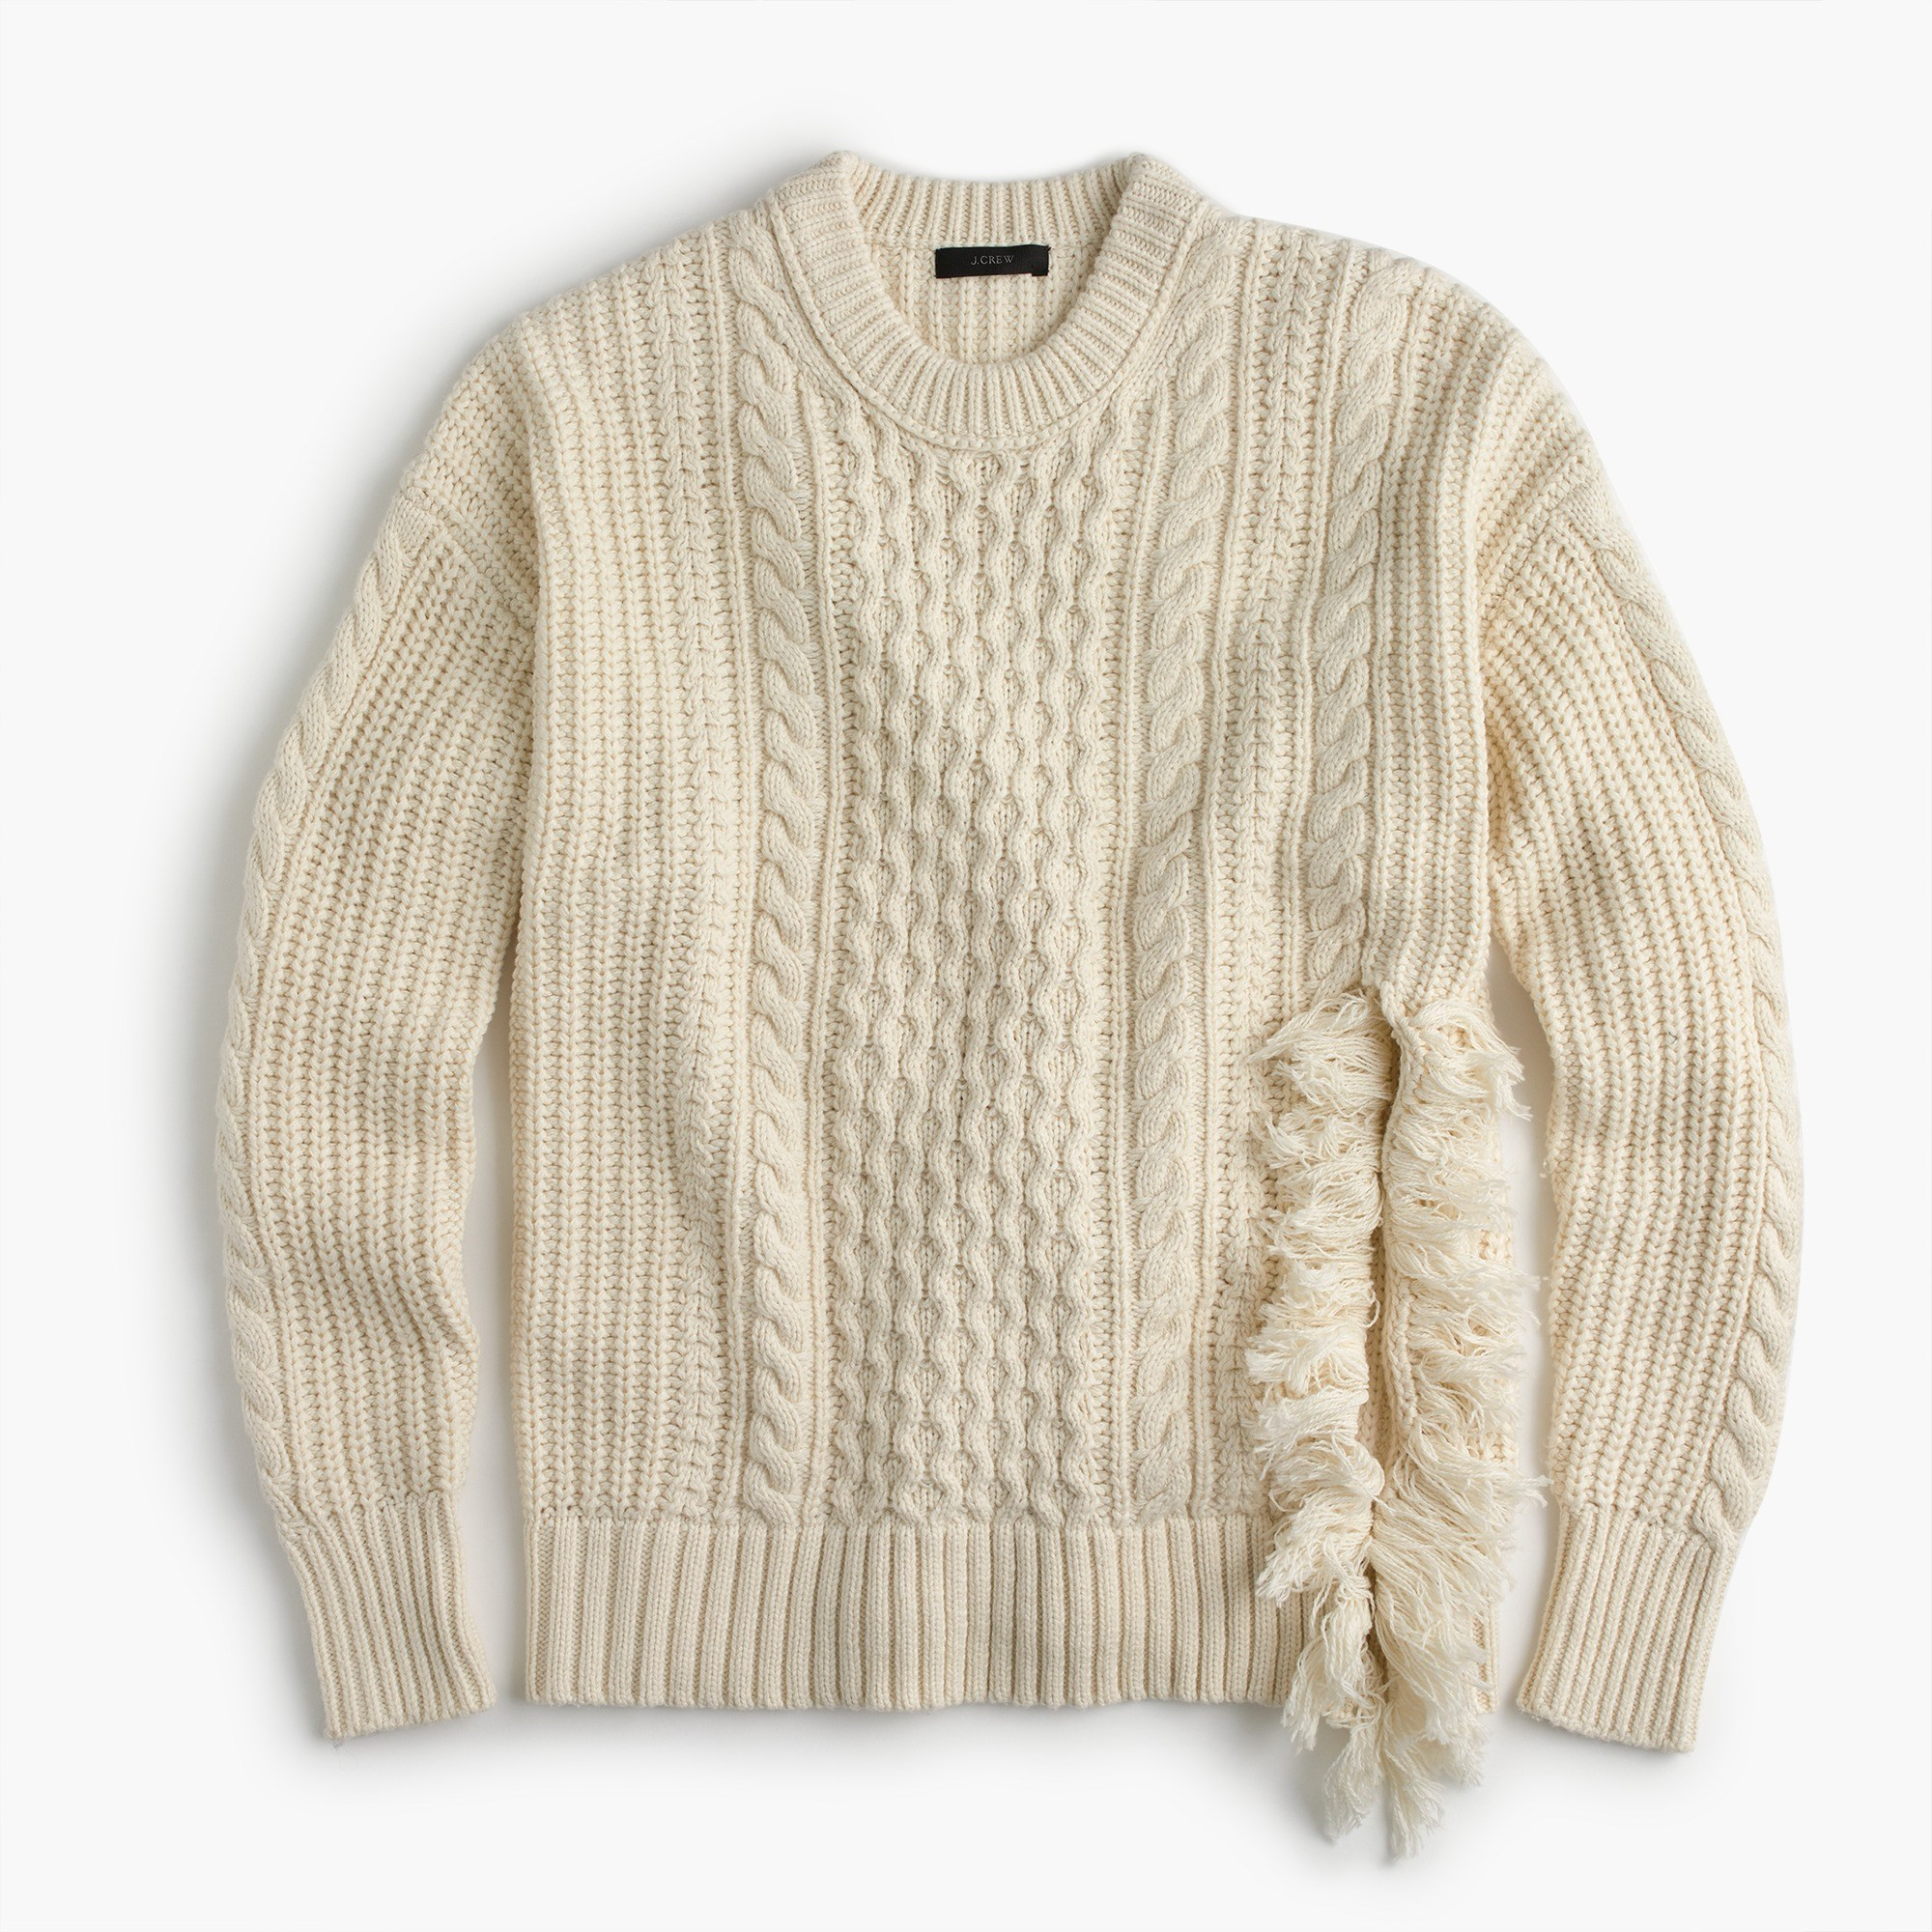 Cable Knit Sweater cableknit sweater with fringe : women pullovers IYRCZRQ